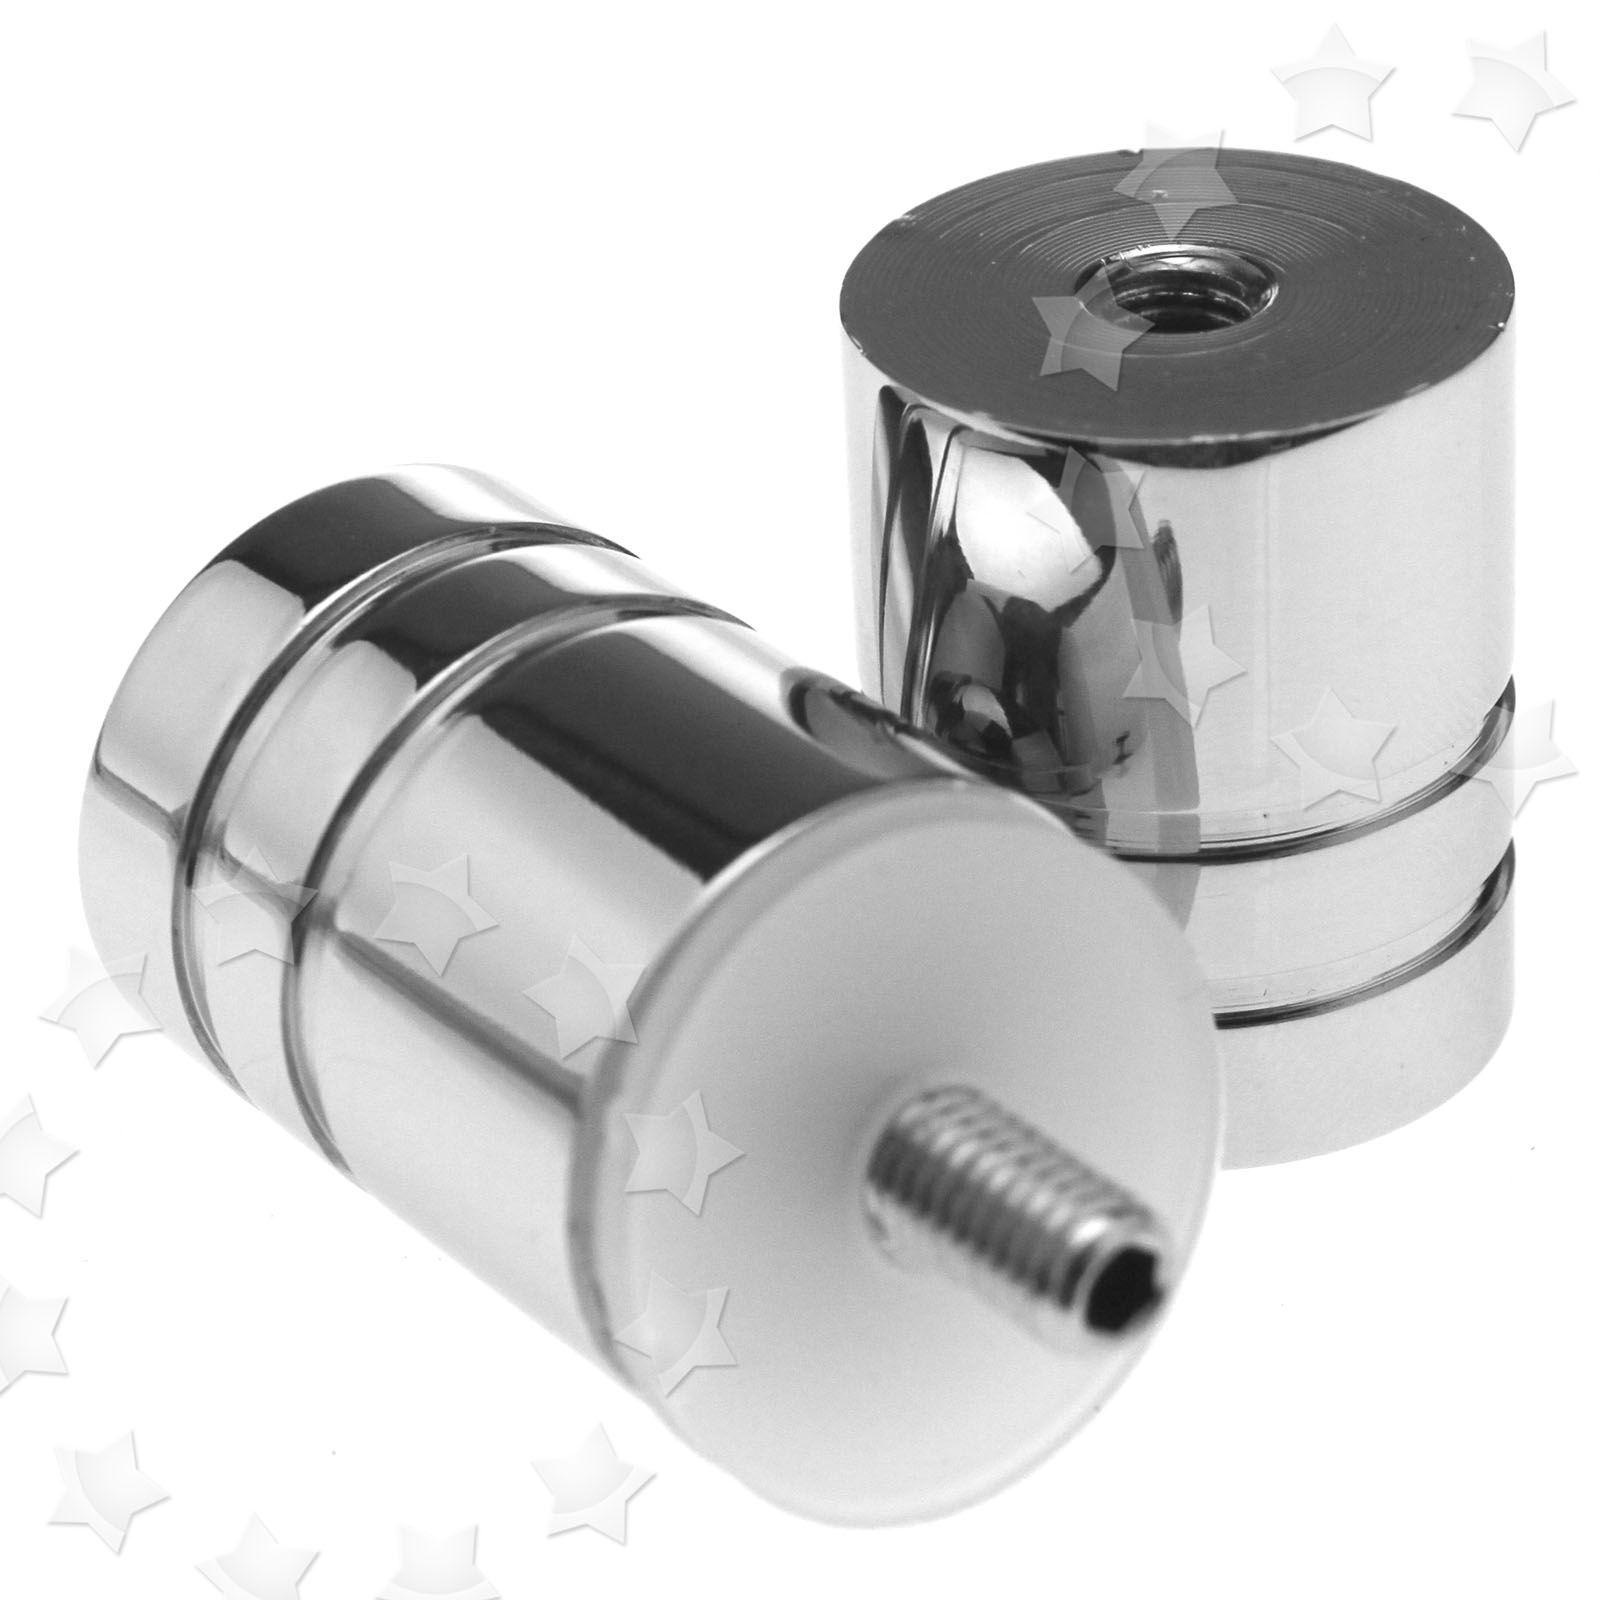 Bathroom Shower Knobs: Shower Door Handle Knob Single Groove Chrome Plated Home